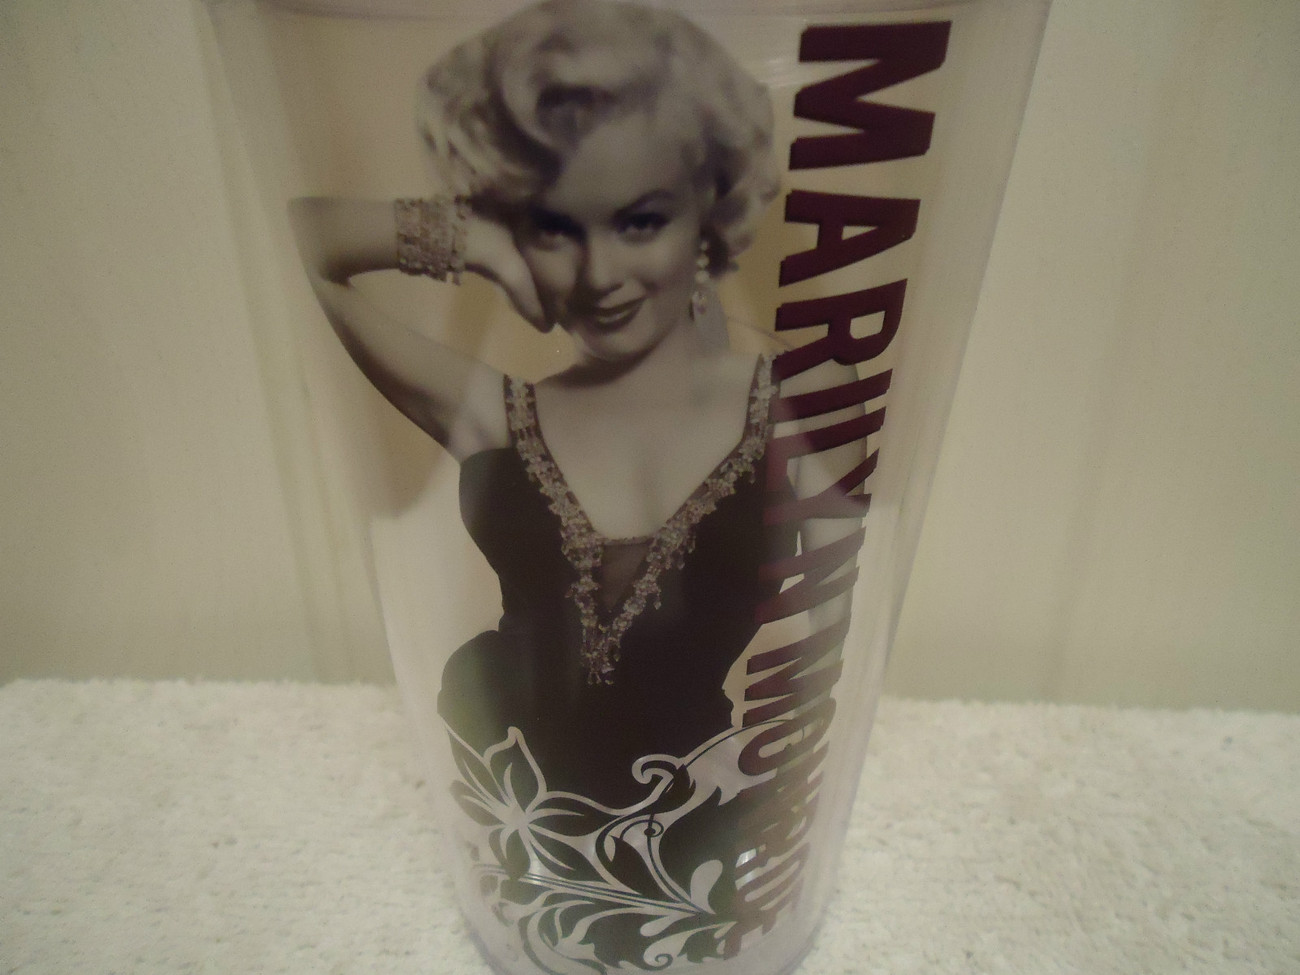 Marilyn Monroe Large Tumbler Glass with Straw